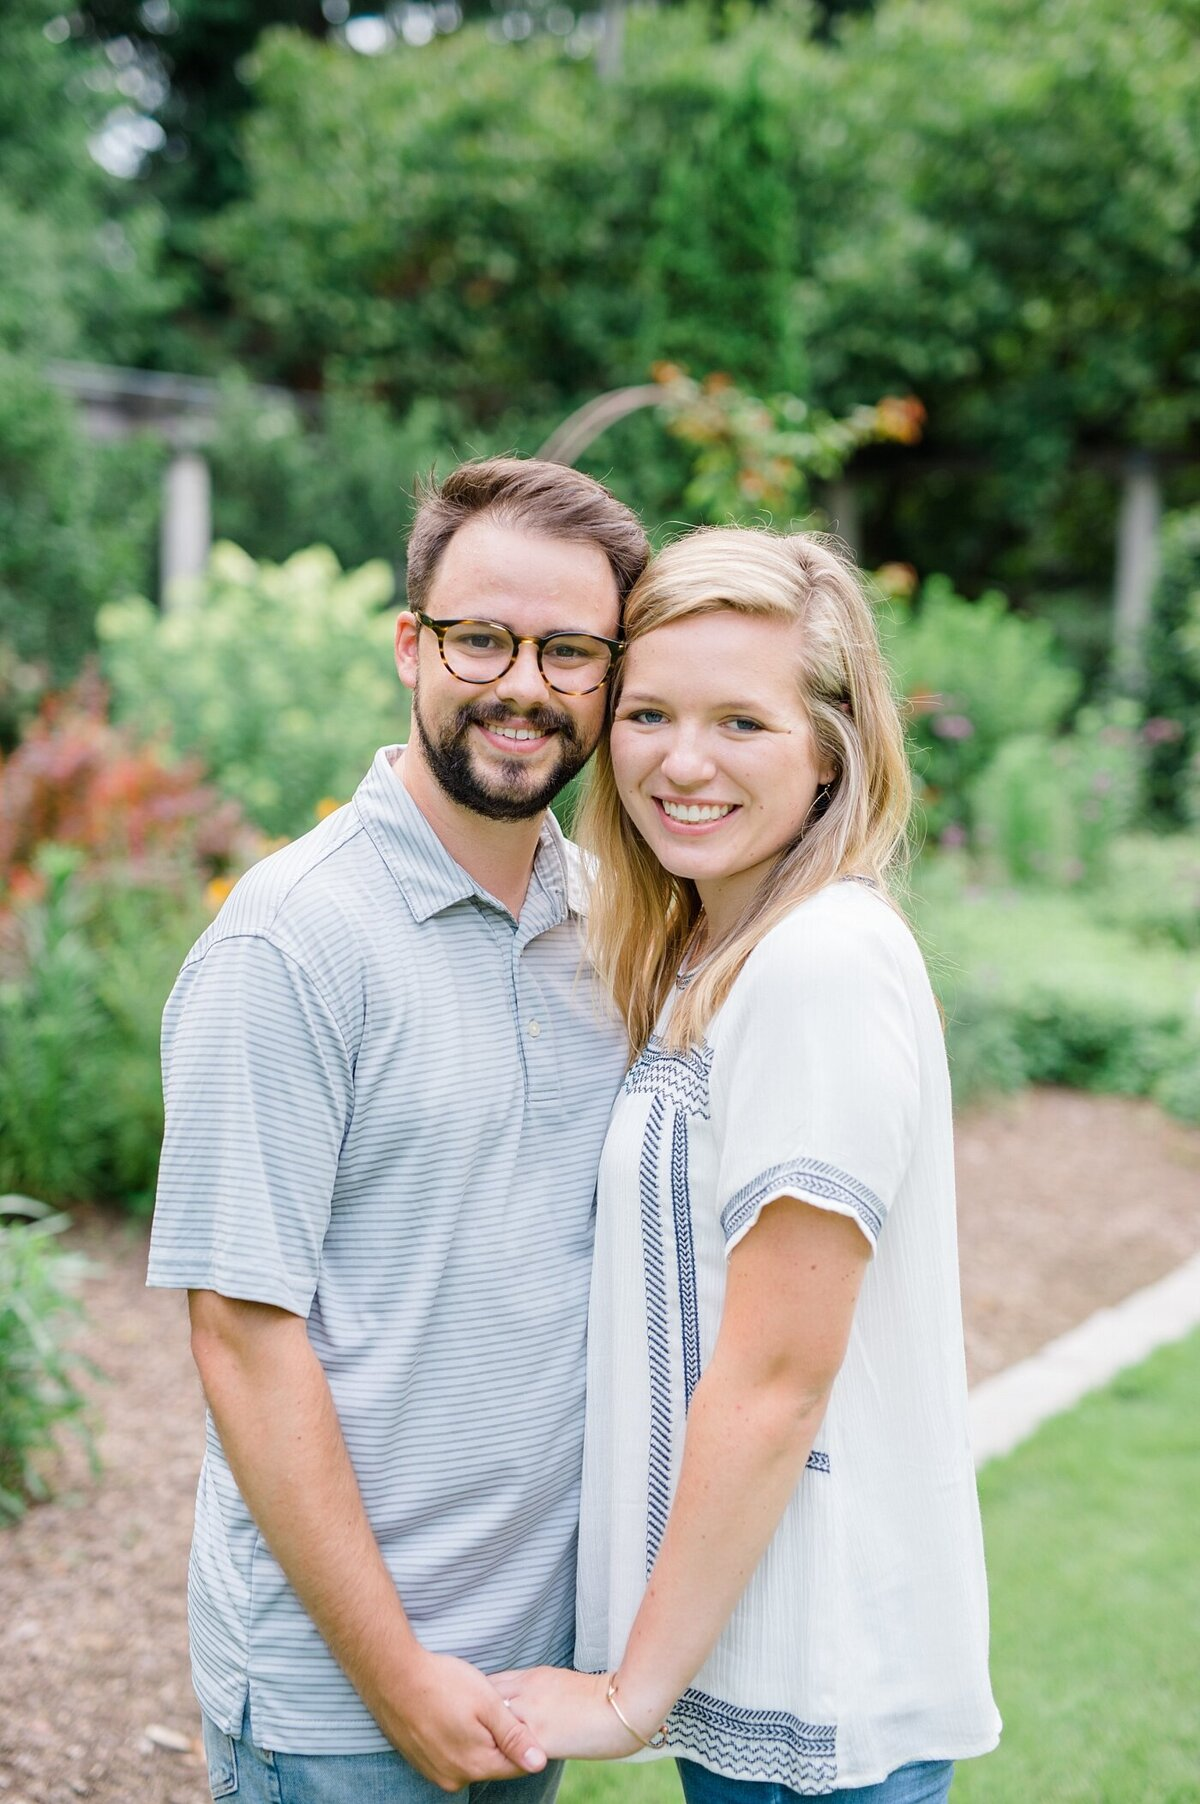 cator-woolford-gardens-engagement-wedding-photographer-laura-barnes-photo-shackelford-39